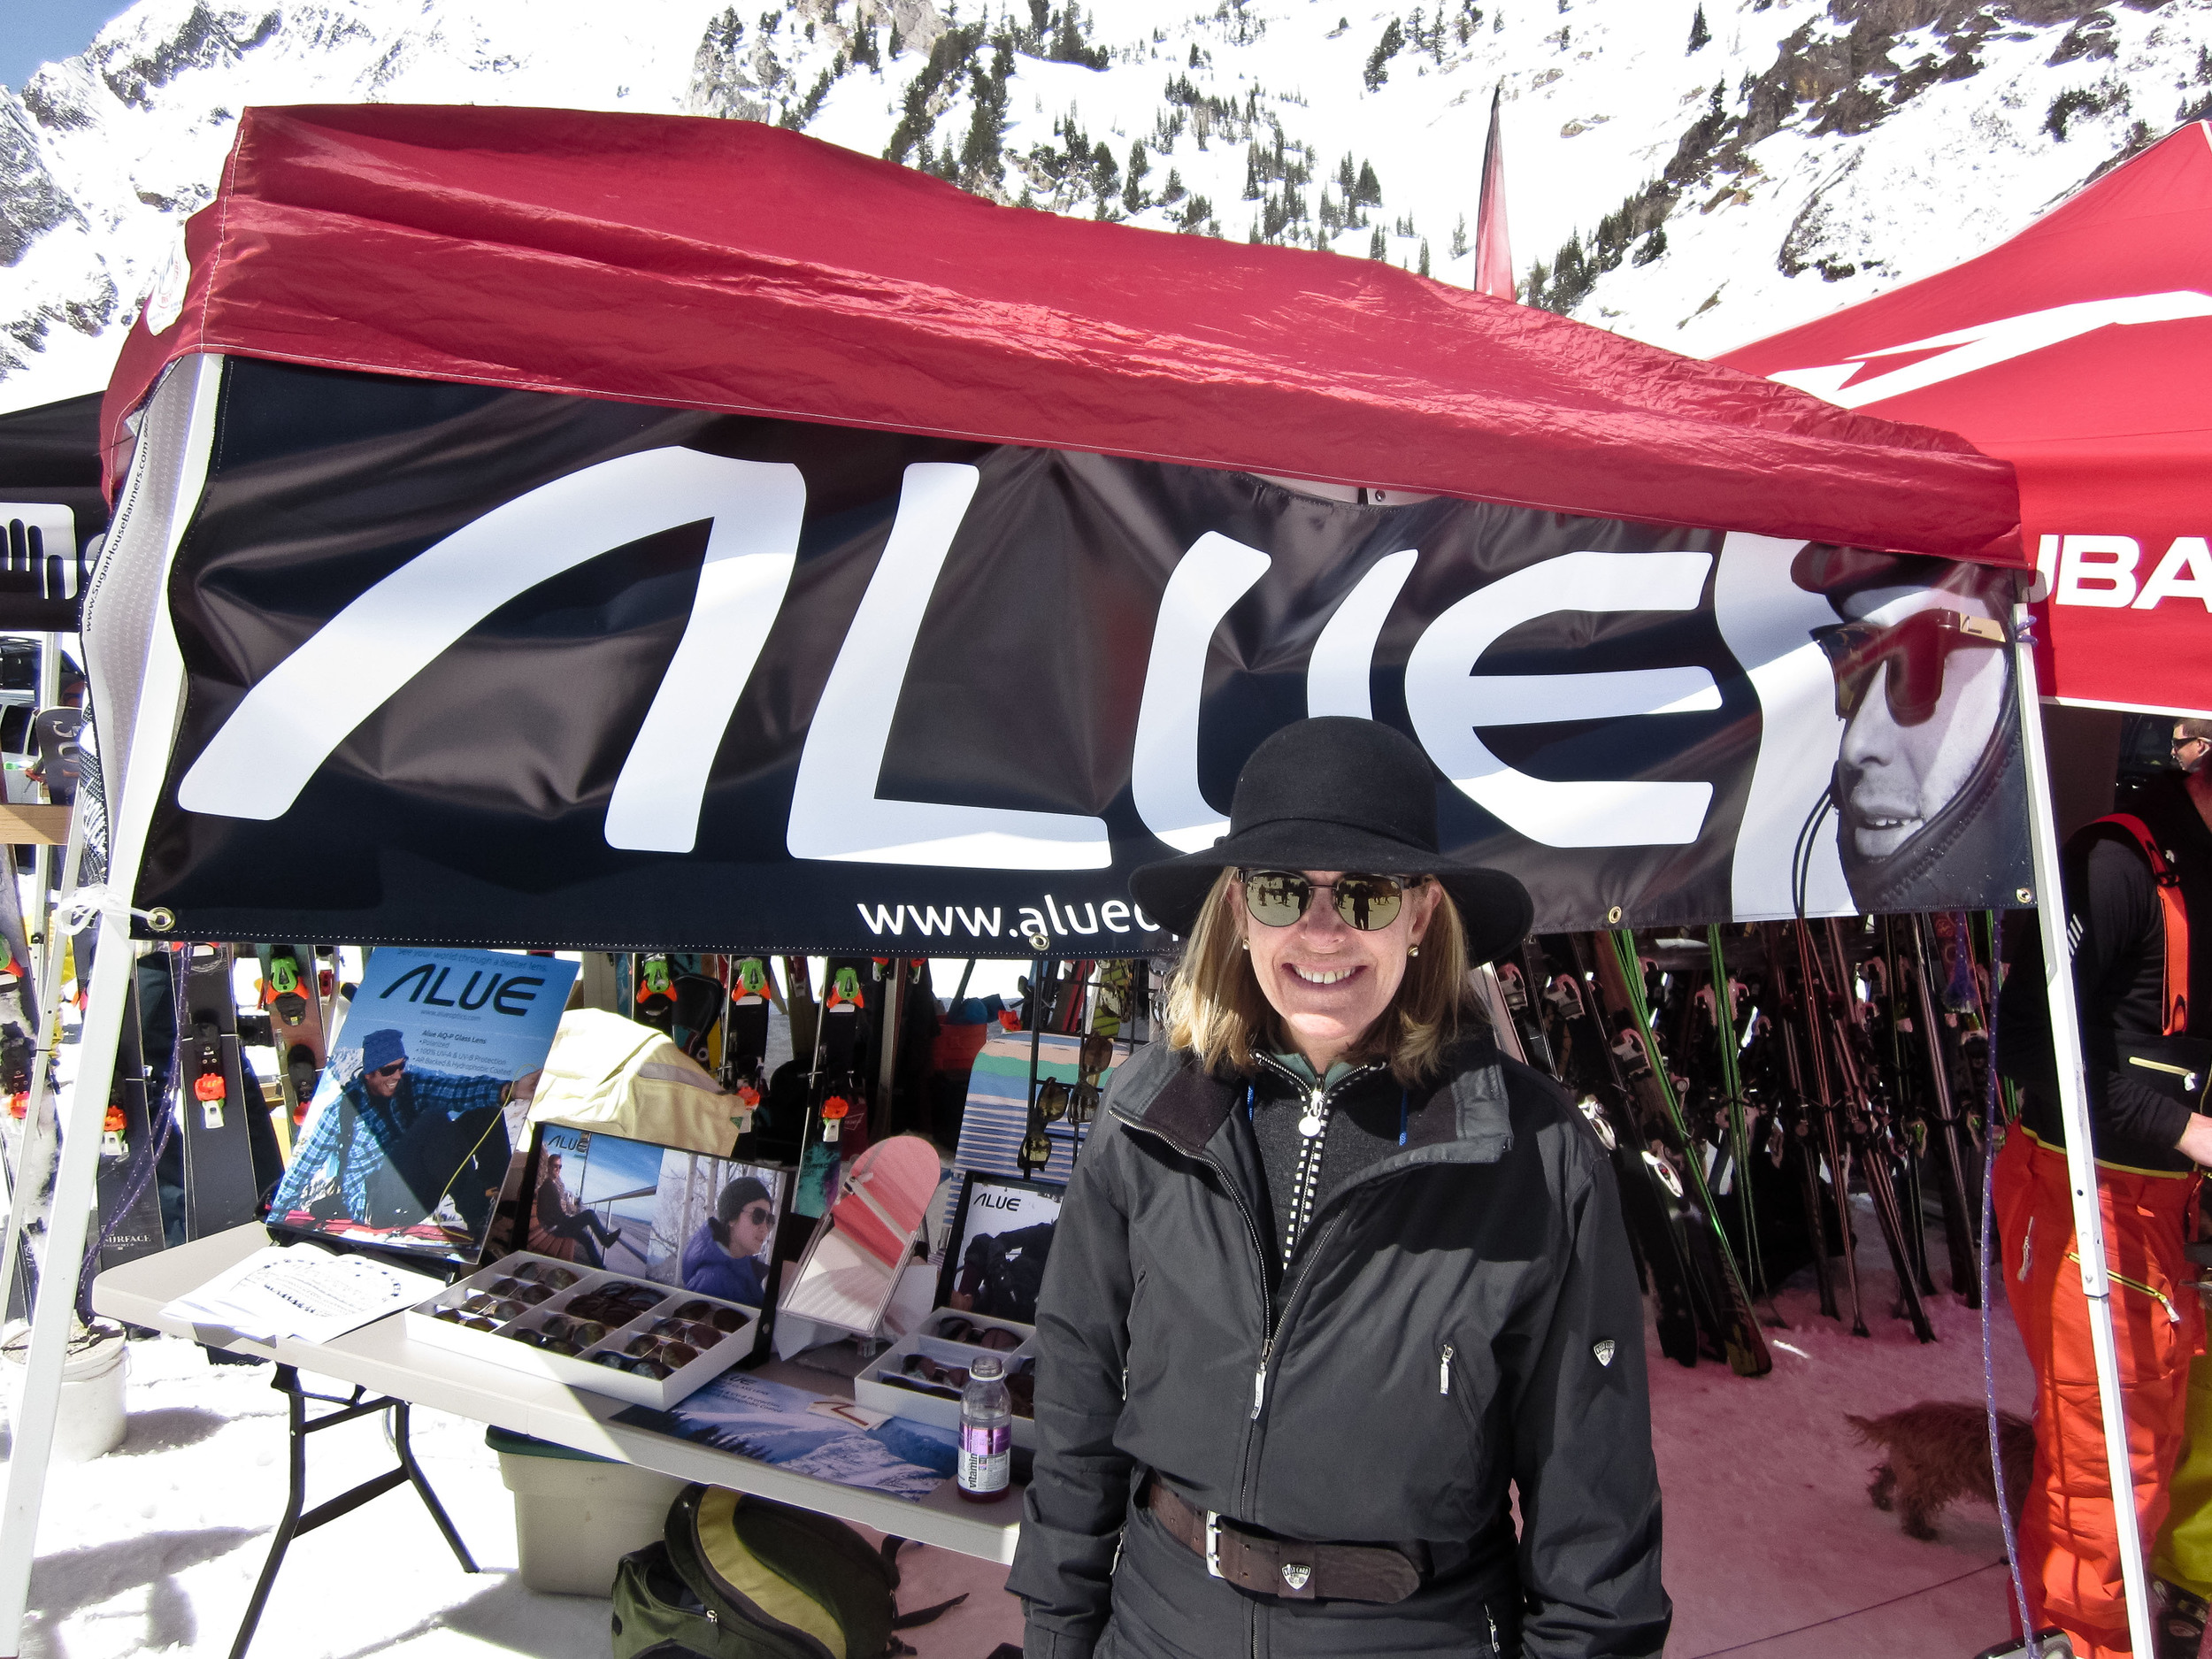 mrs danforth alue optics alta demo day